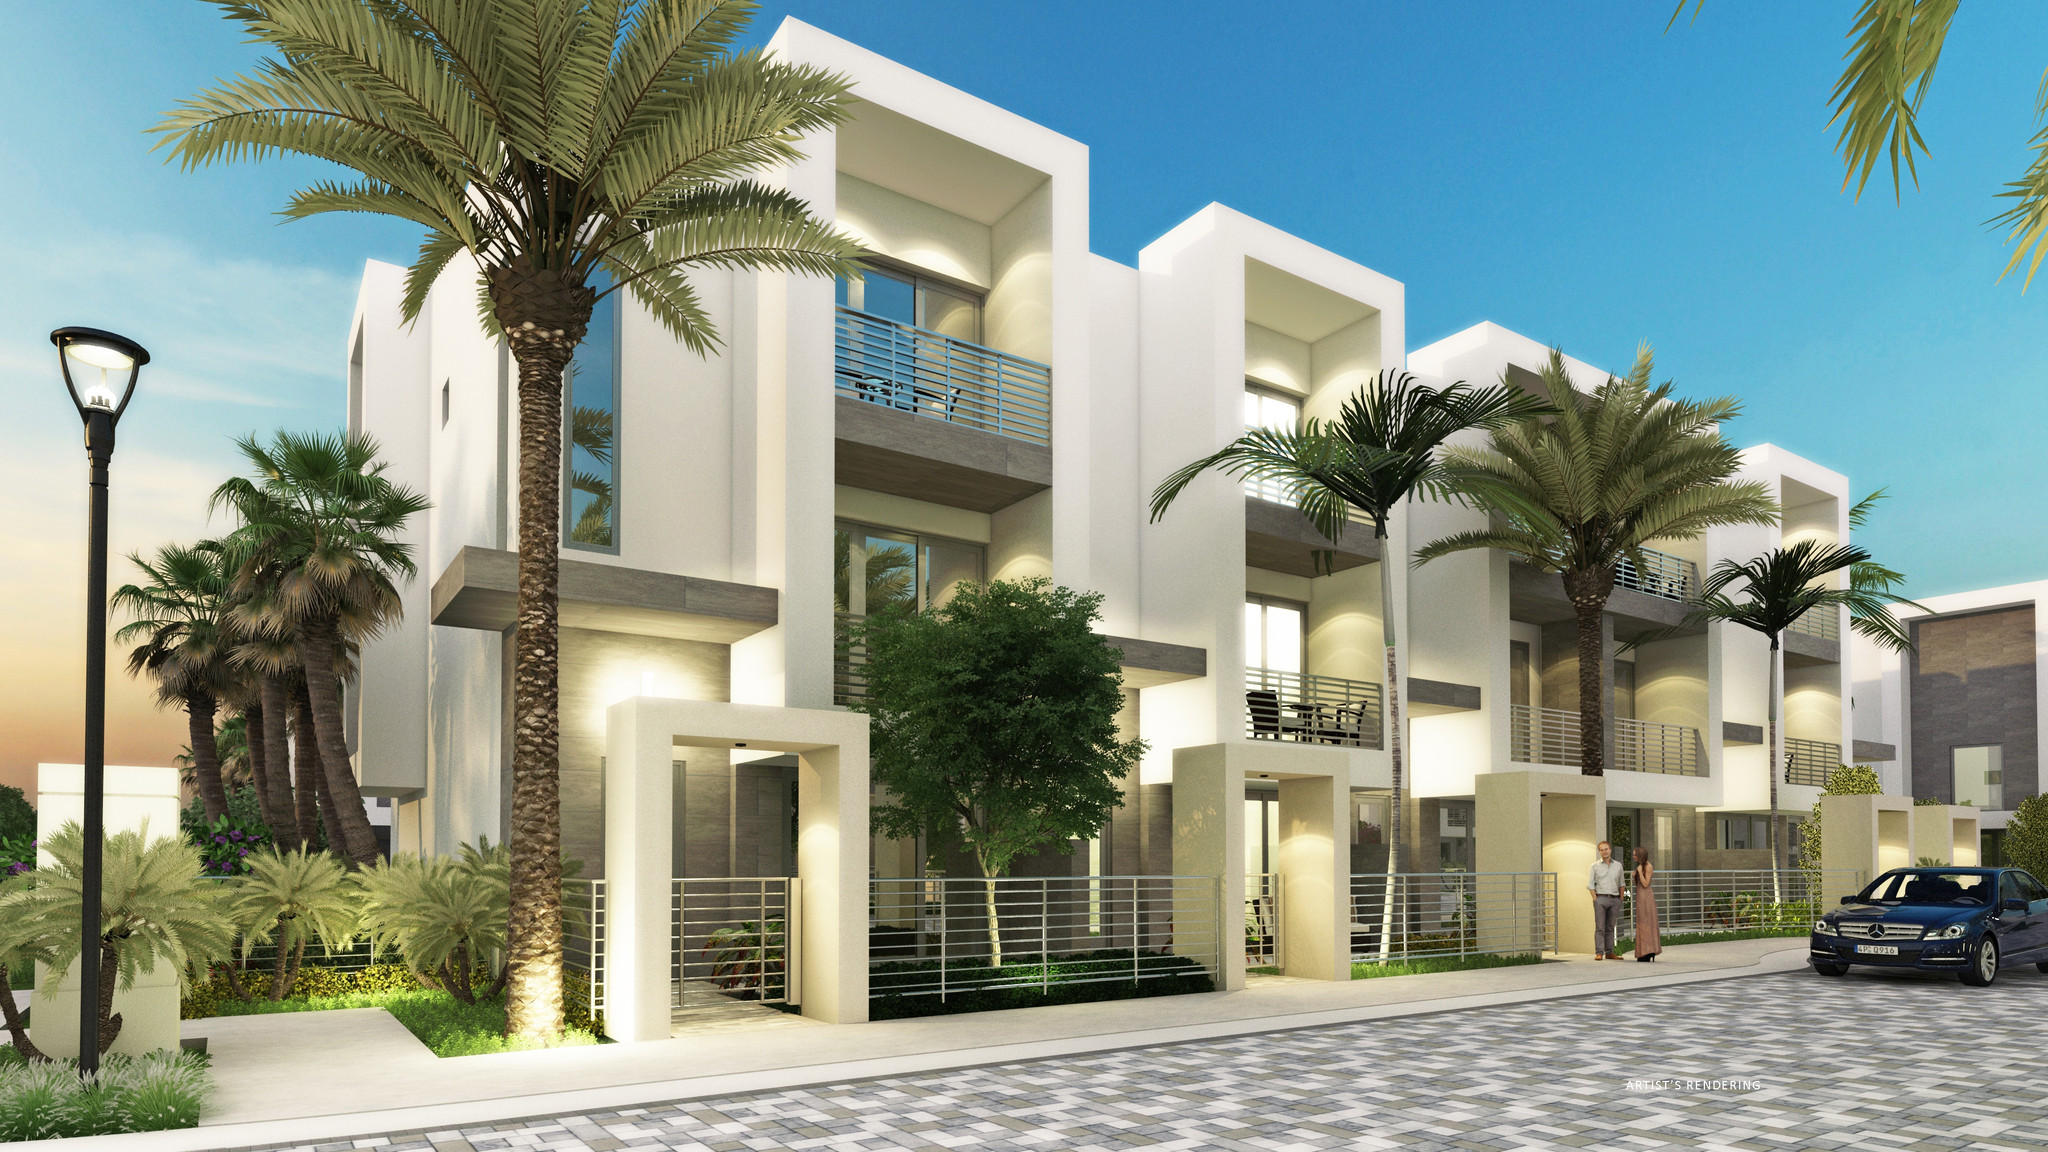 Kolter Building Three Story Townhomes In Boca Raton Sun